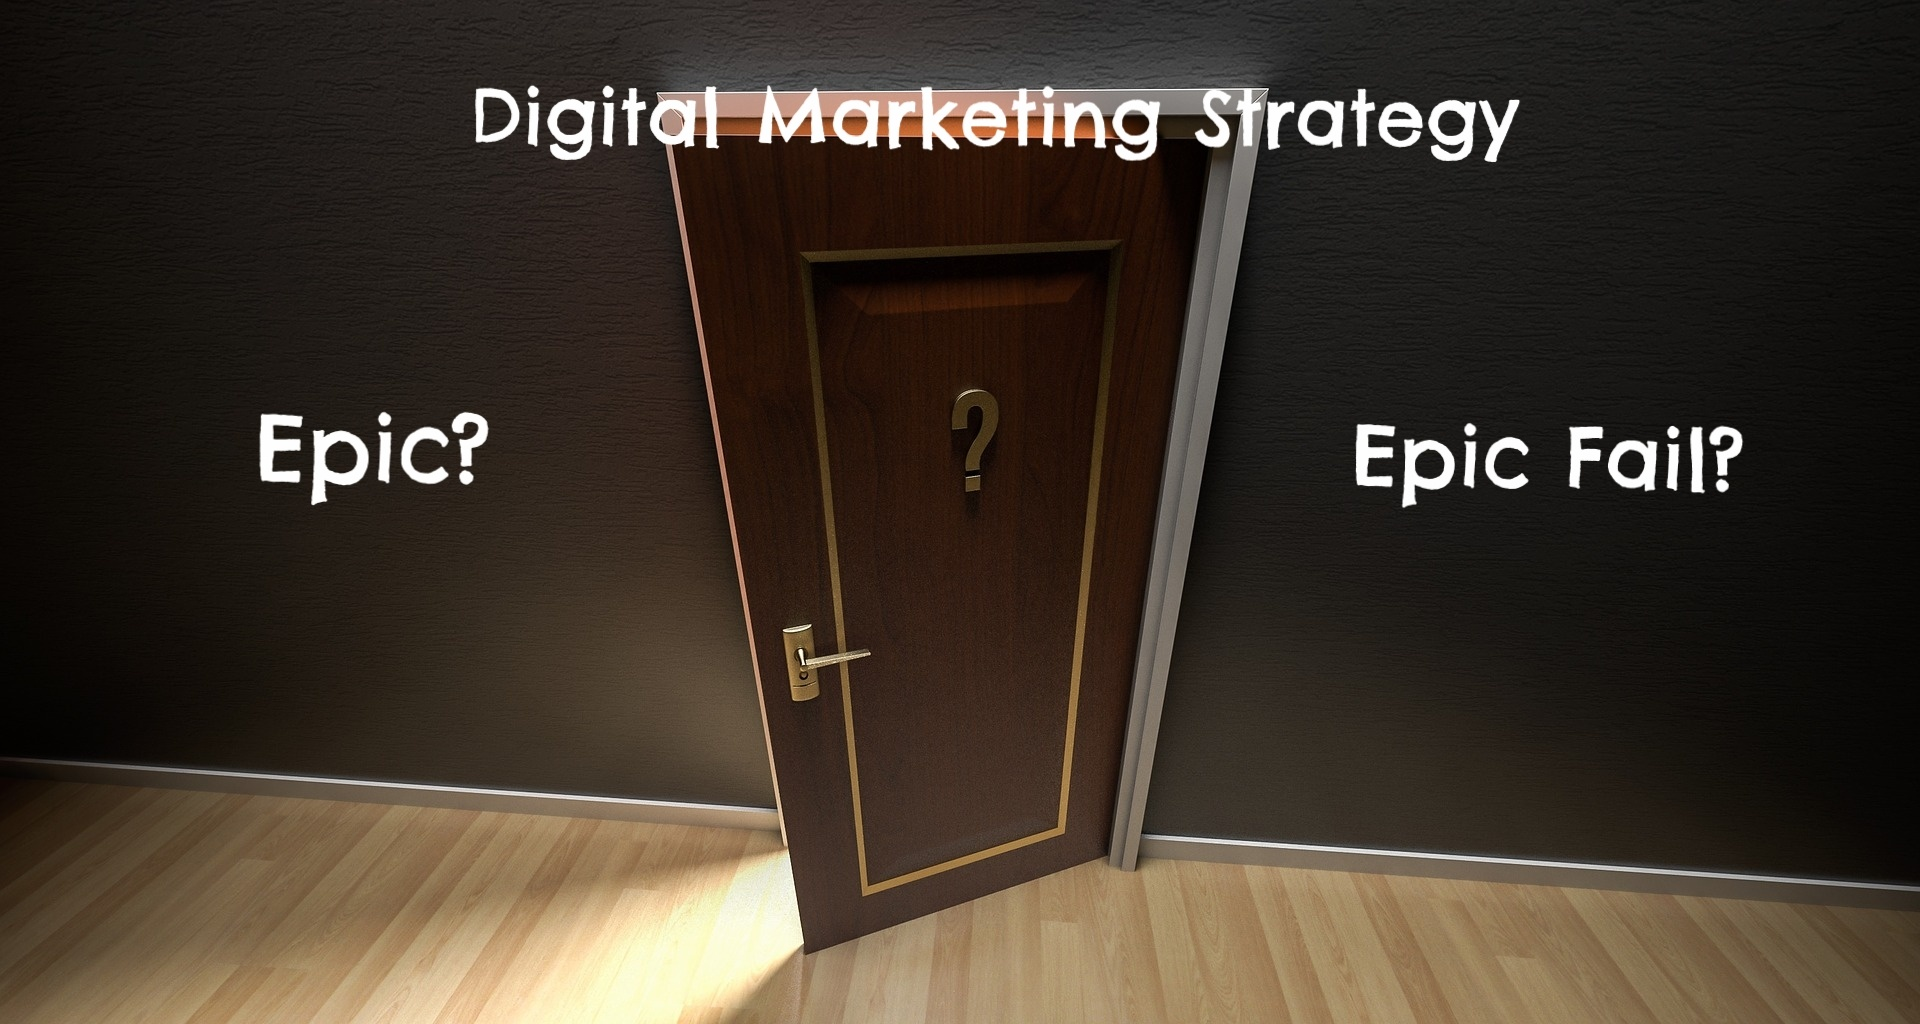 Digital Marketing Strategy Fails